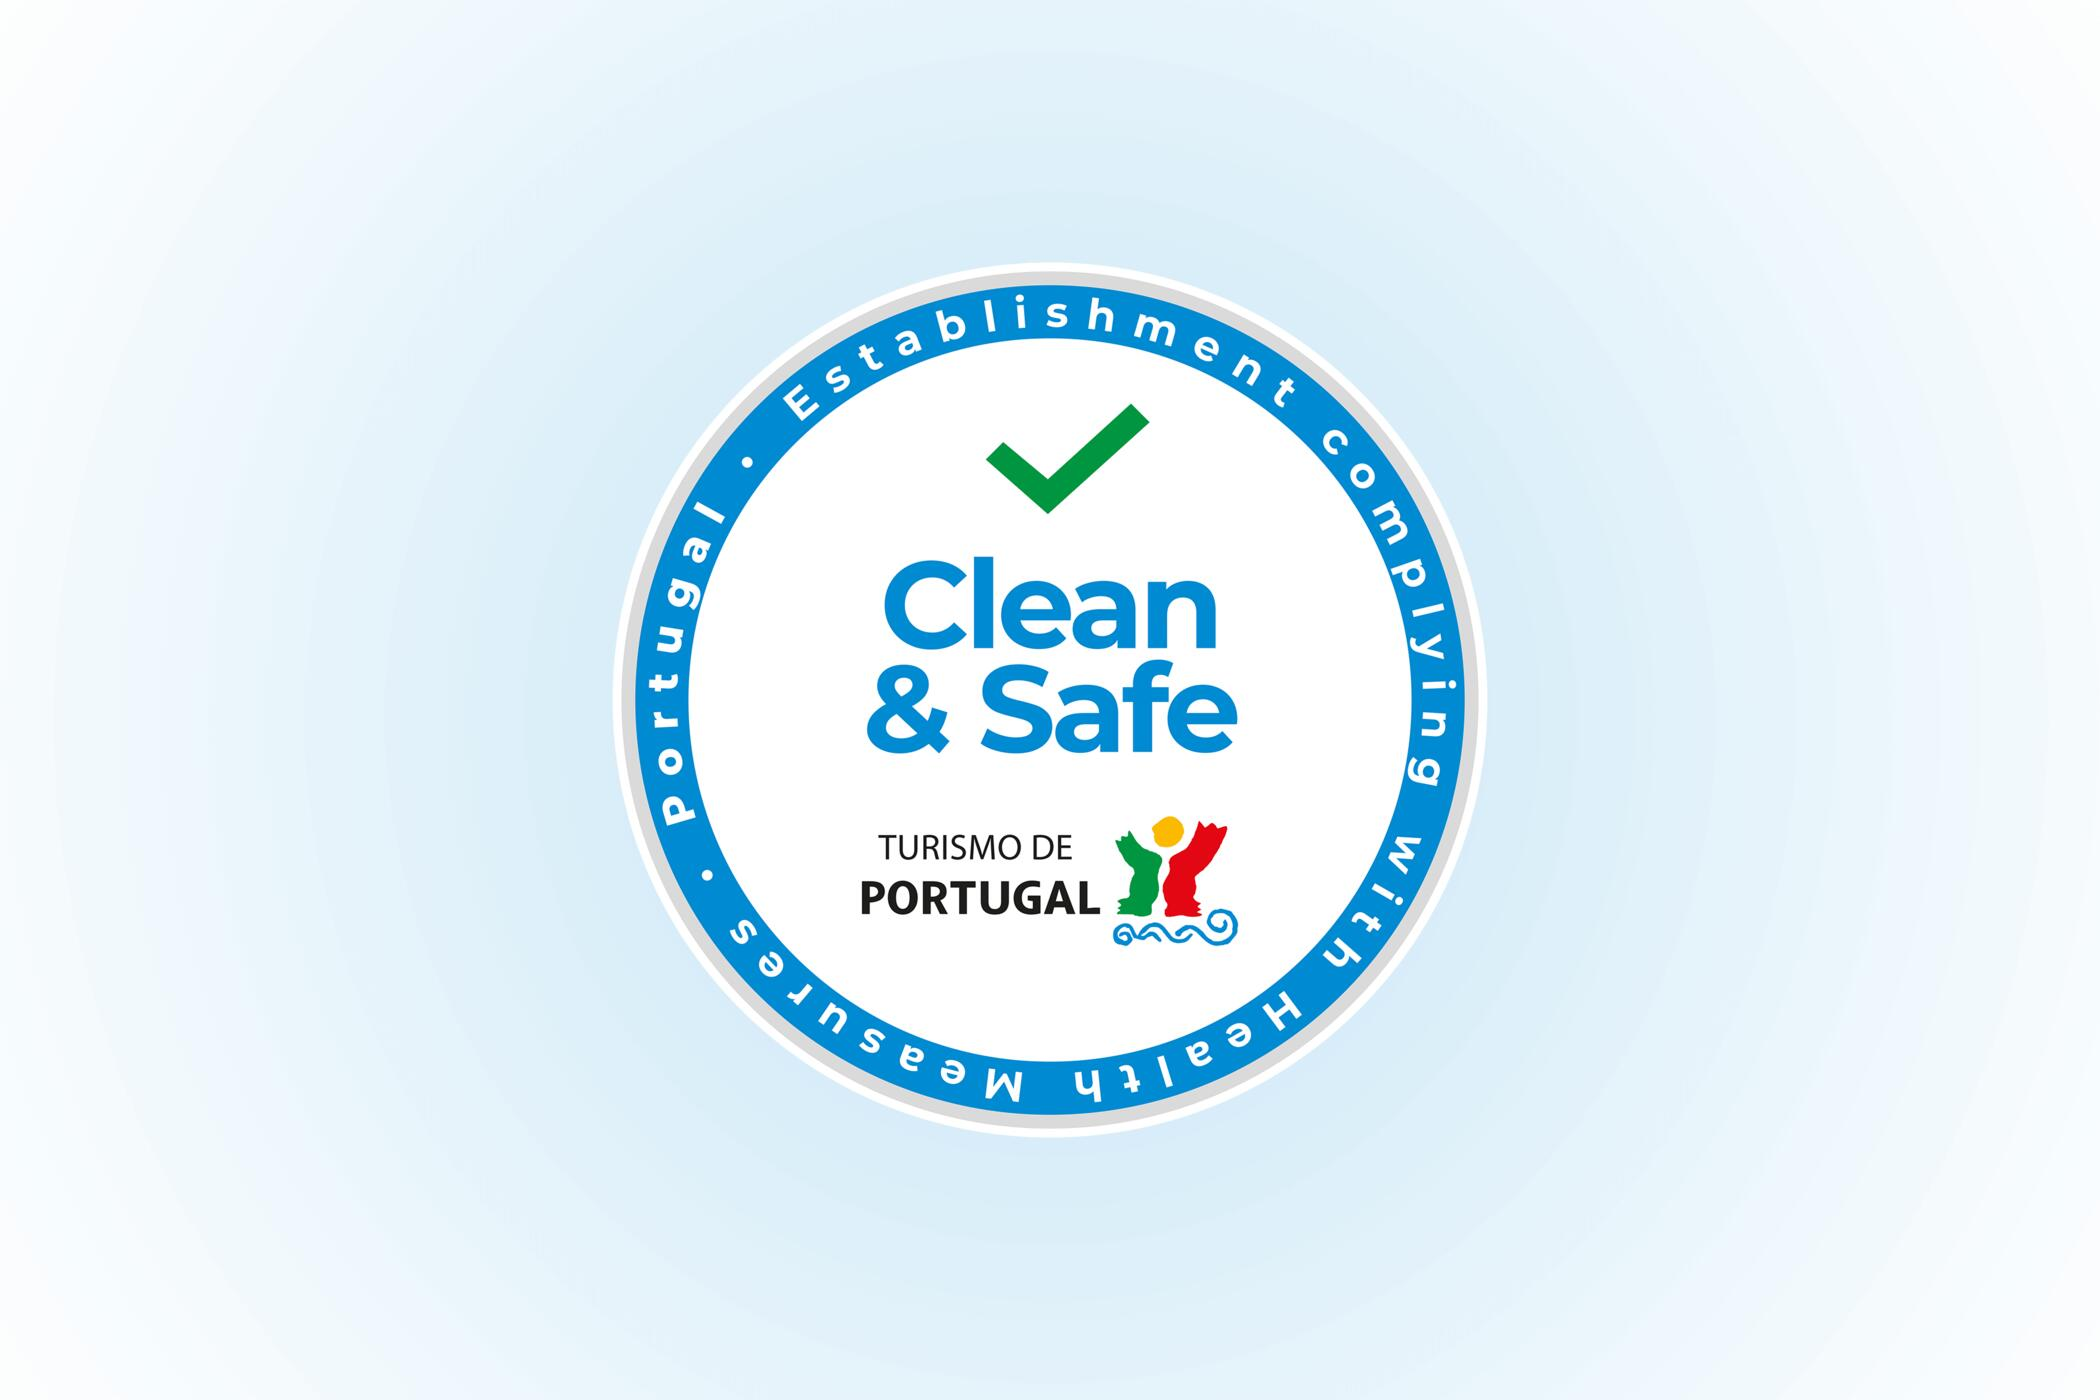 Hygiene & Safety Charter In Covid-19 Times